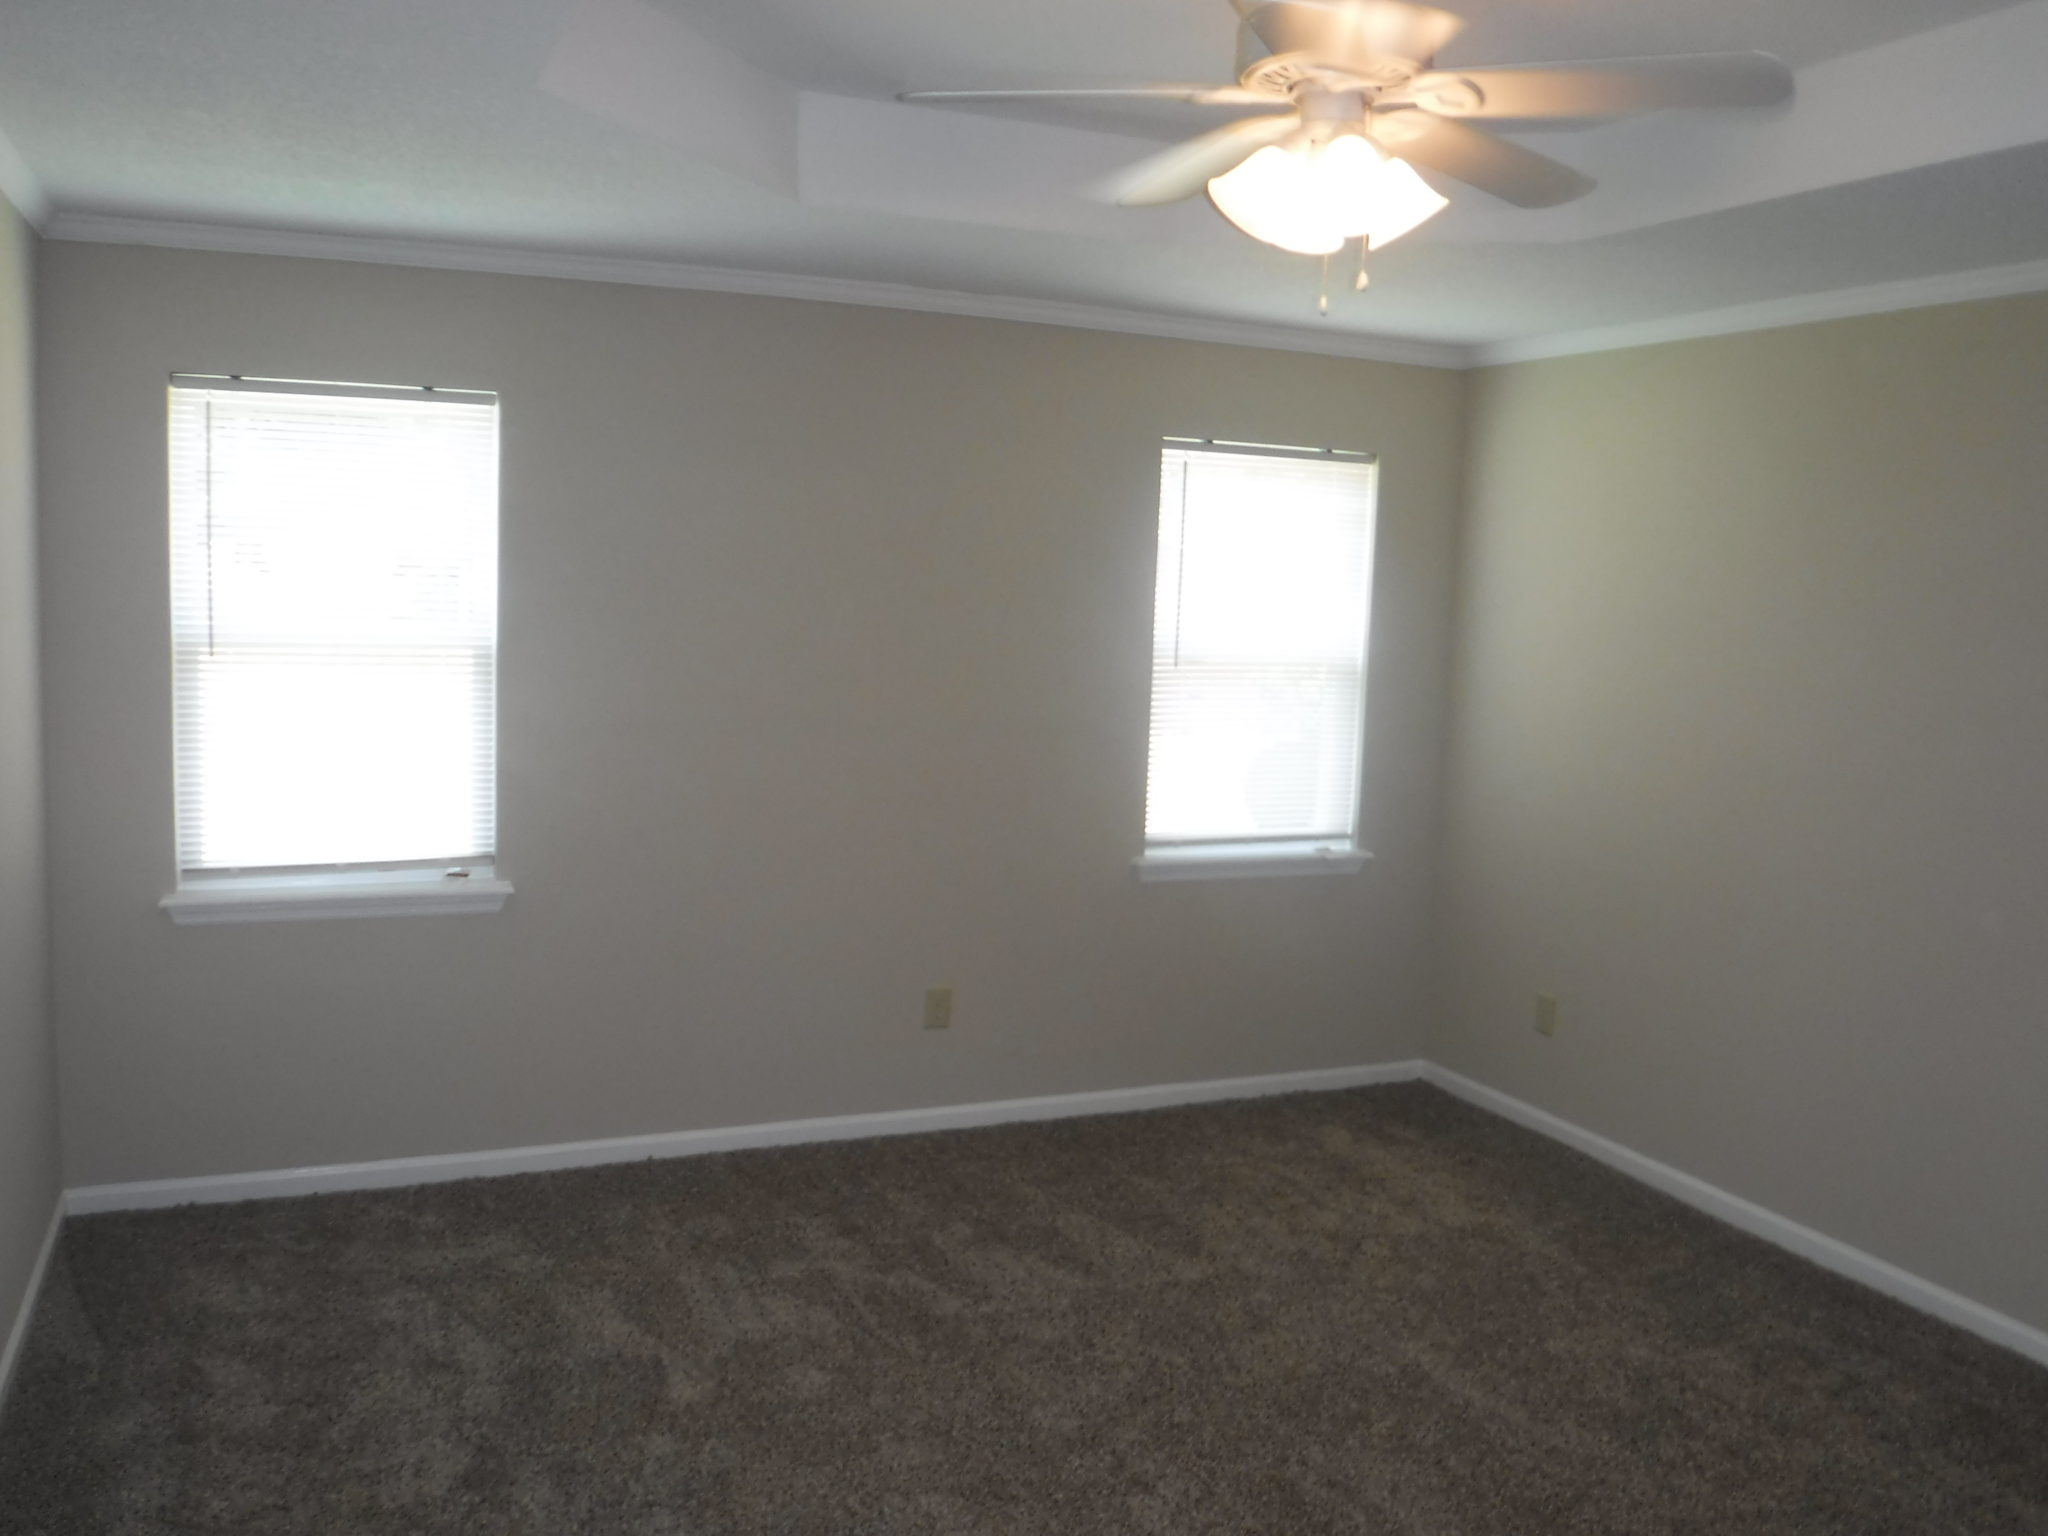 13 X 15 Owner S Bedroom With Trey Ceiling New Ceiling Fan